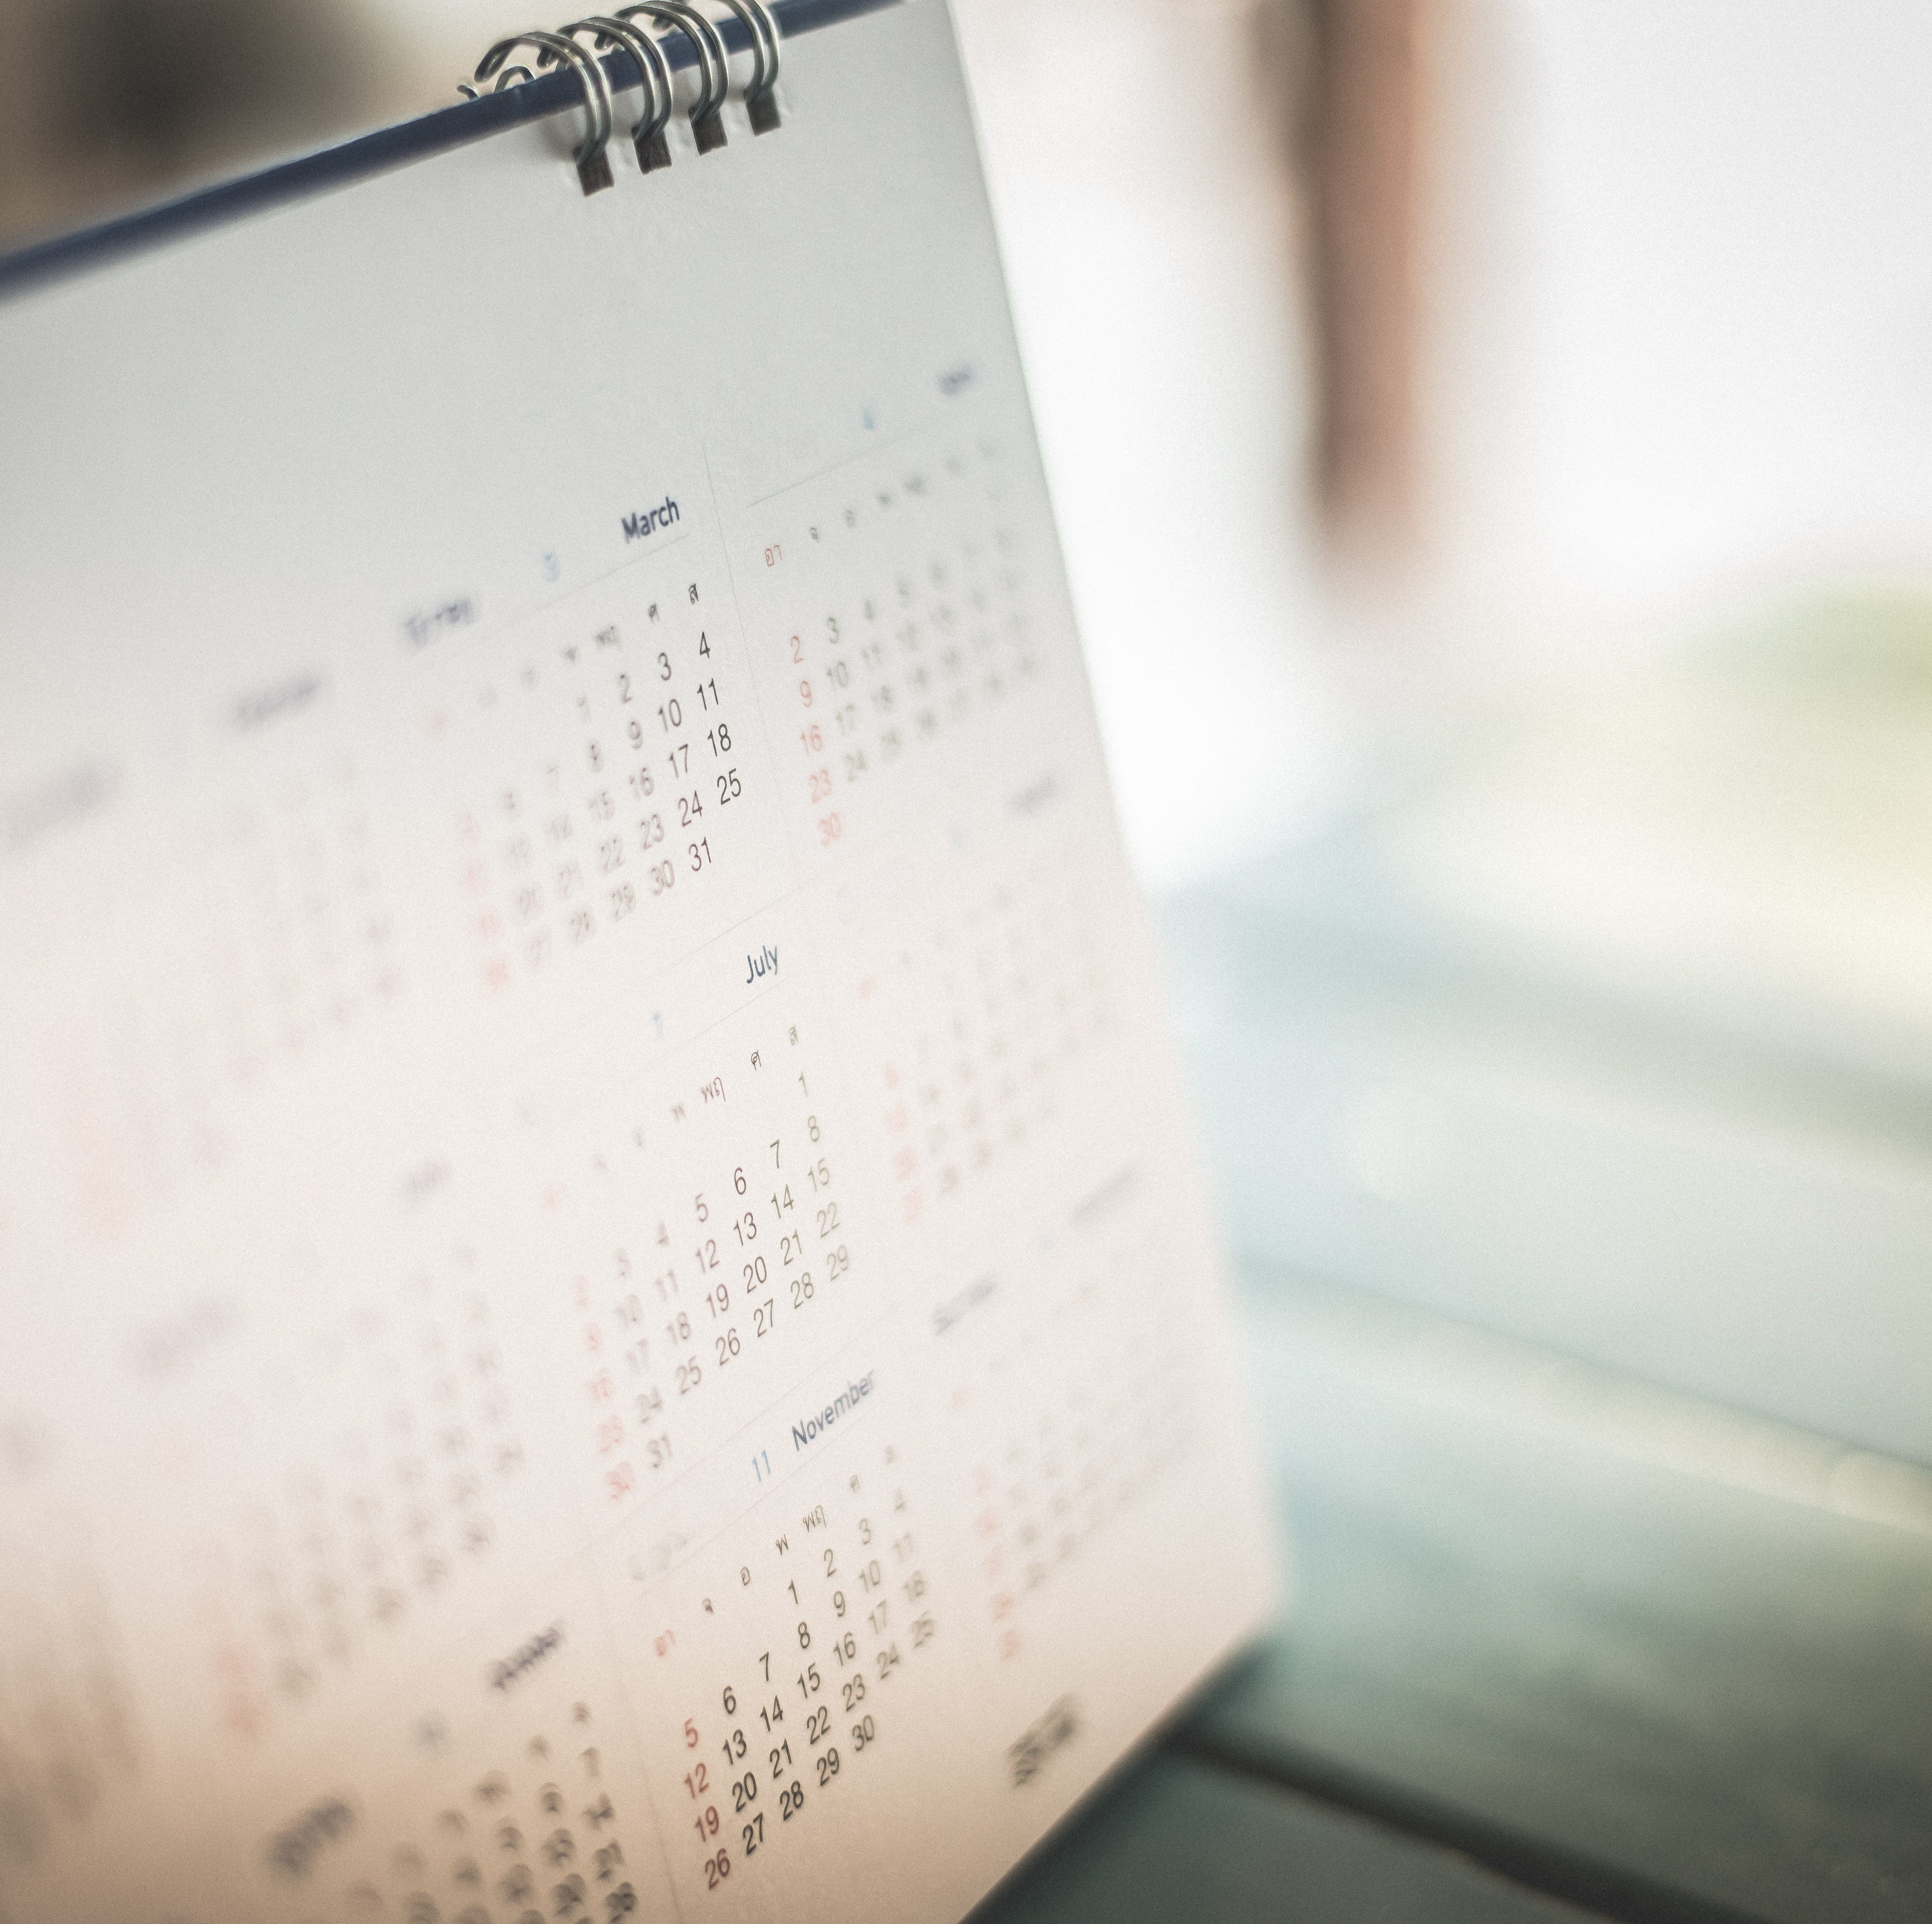 Find out what's going on in the business community in Monmouth and Ocean counties with this business calendar.